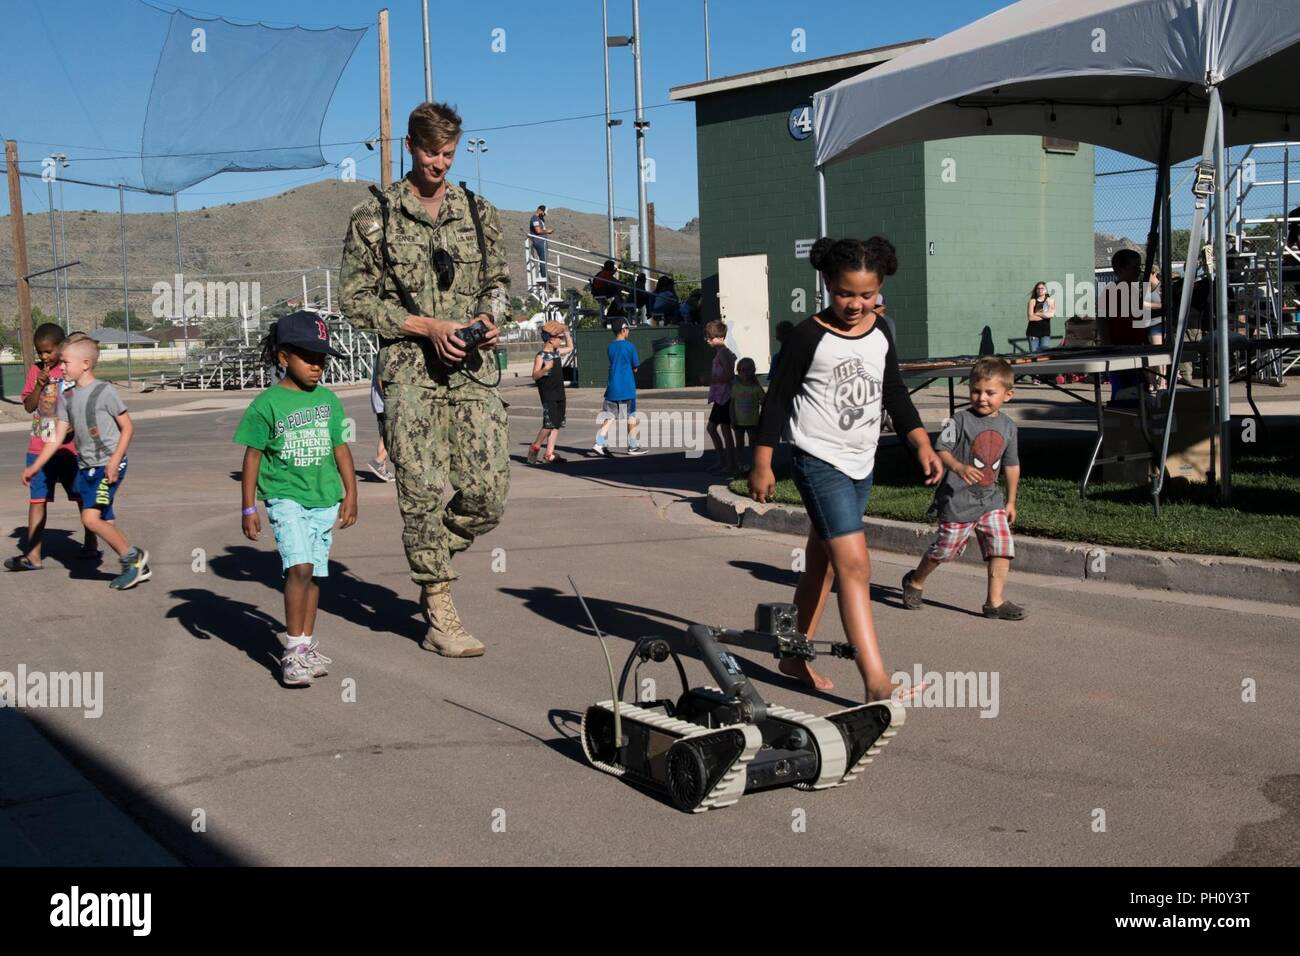 CARSON CITY, Nev. (June 21, 2018) Navy Diver 2nd Class Adam Renner, assigned to Southwest Regional Maintenance Center Alpha Dive Team, demonstrates how to operate an iRobot 310 Small Unmanned Ground Vehicle at a Nevada District 1 Little League Tournament on Governor's Field in support of Reno/Carson City Navy Week.  The Navy Office of Community Outreach uses the Navy Week program to bring Navy Sailors, equipment and displays to approximately 15 American cities each year for a week-long schedule of outreach engagements. - Stock Image